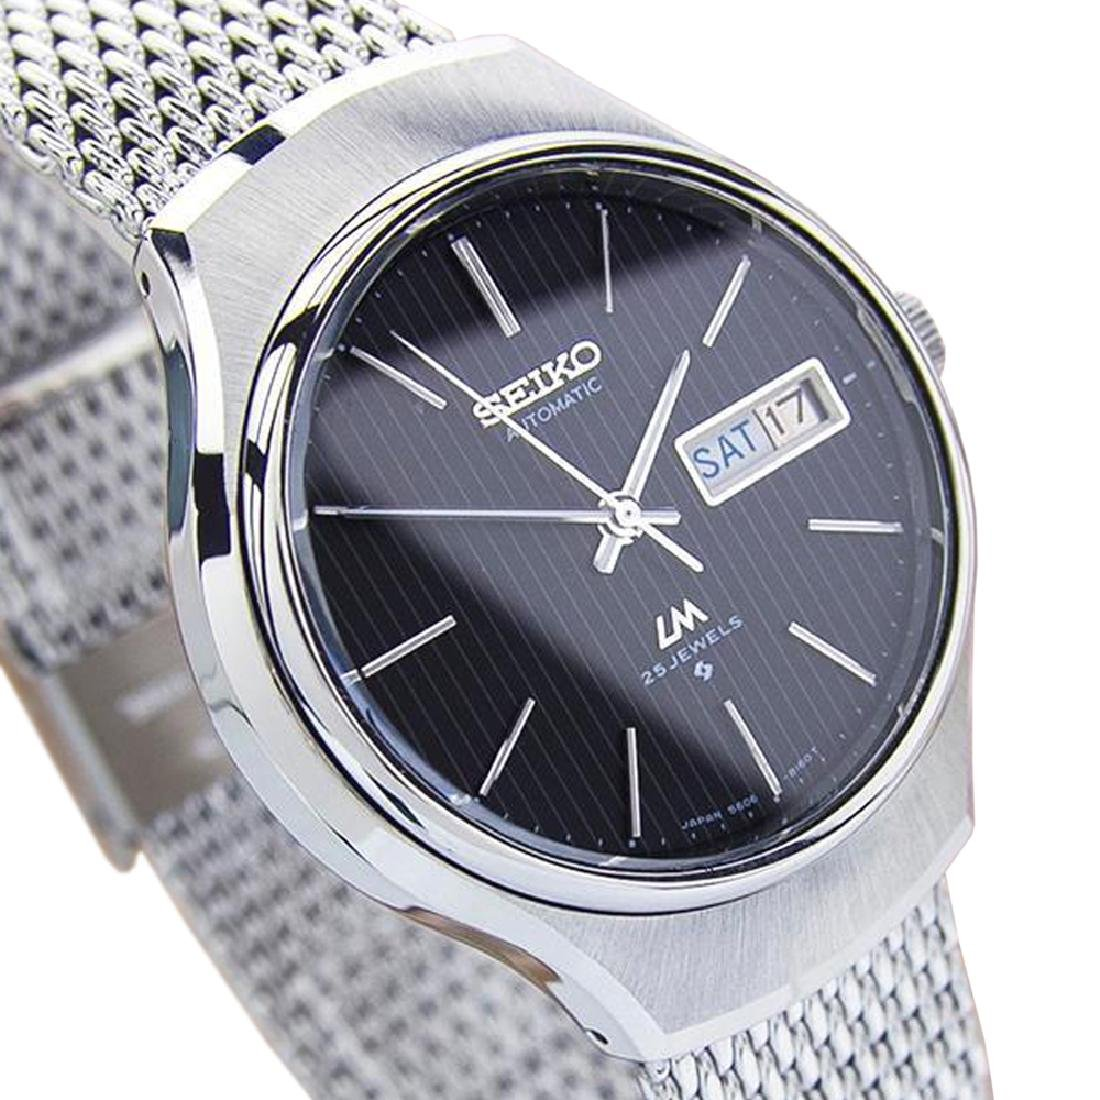 *Seiko LM Lord Matic Rare Men's Japanese 1970 25 Jewels